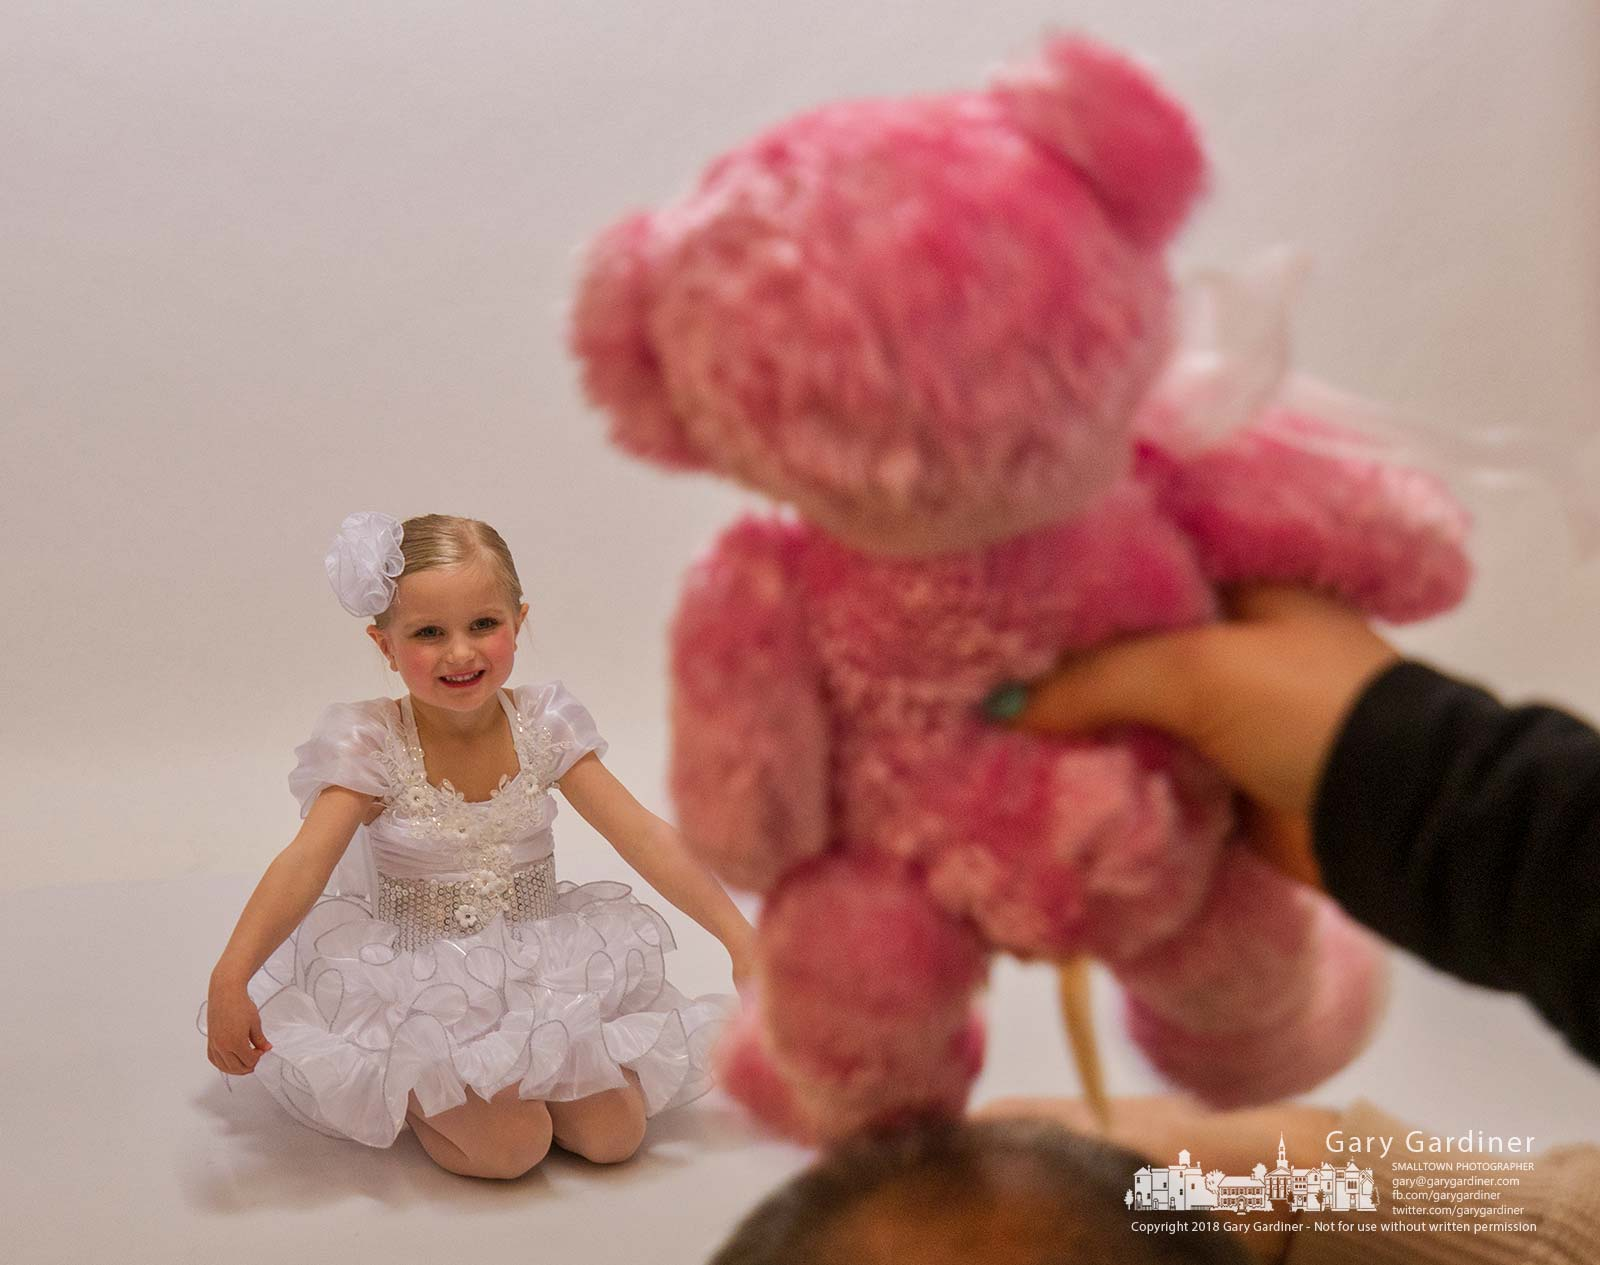 A Generations Performing Arts dancer smiles as instructed by the photographer's assistant and her pink bear during the annual photo shoot at the studio. My Final Photo for March 8, 2018.